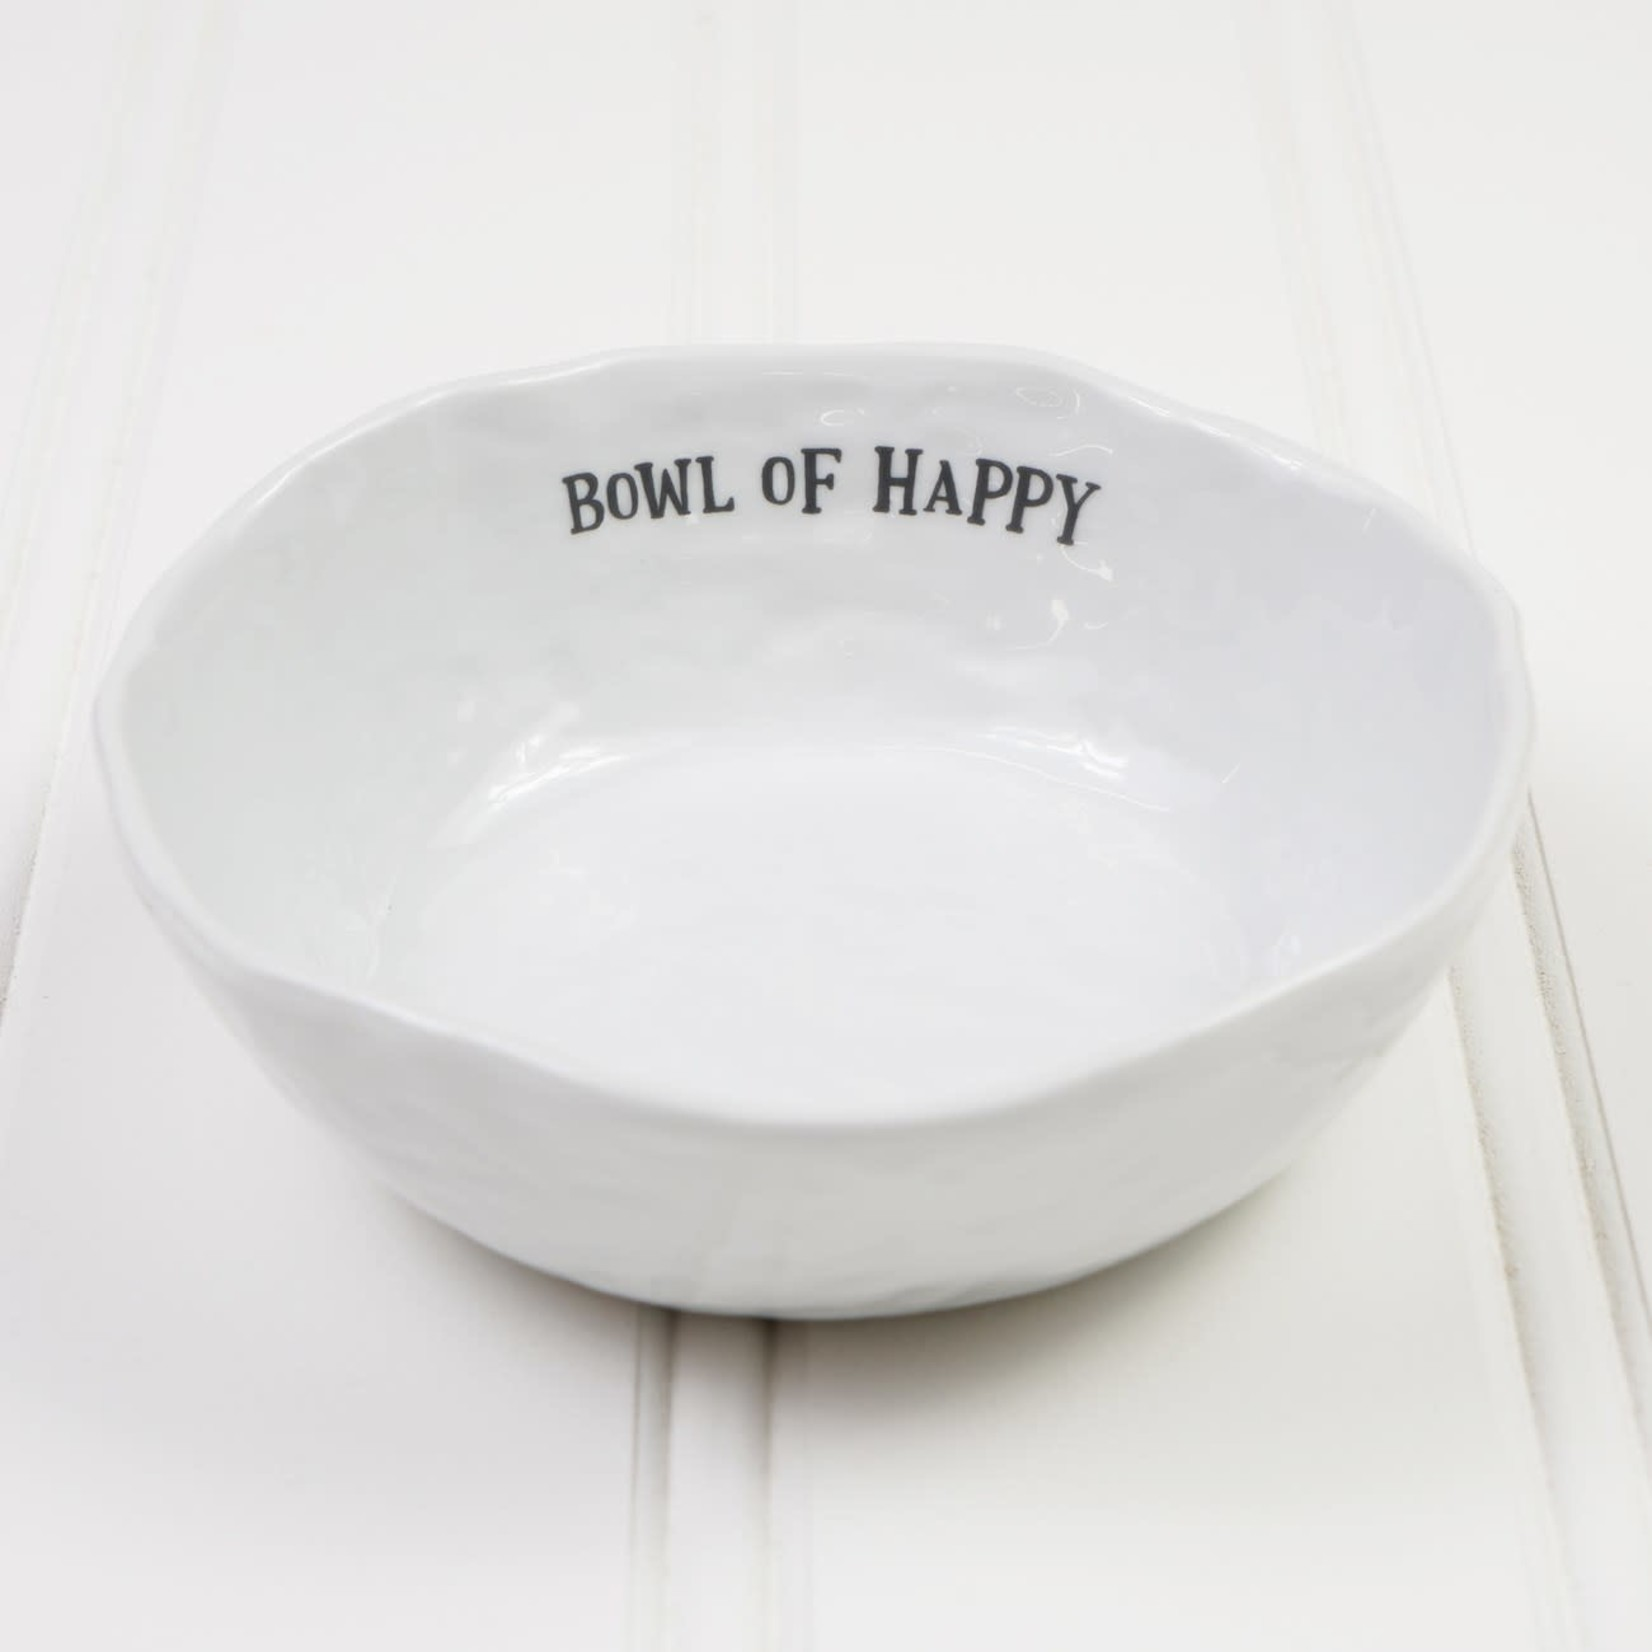 Brownlow Gifts Kitchen: Bowl of Happy